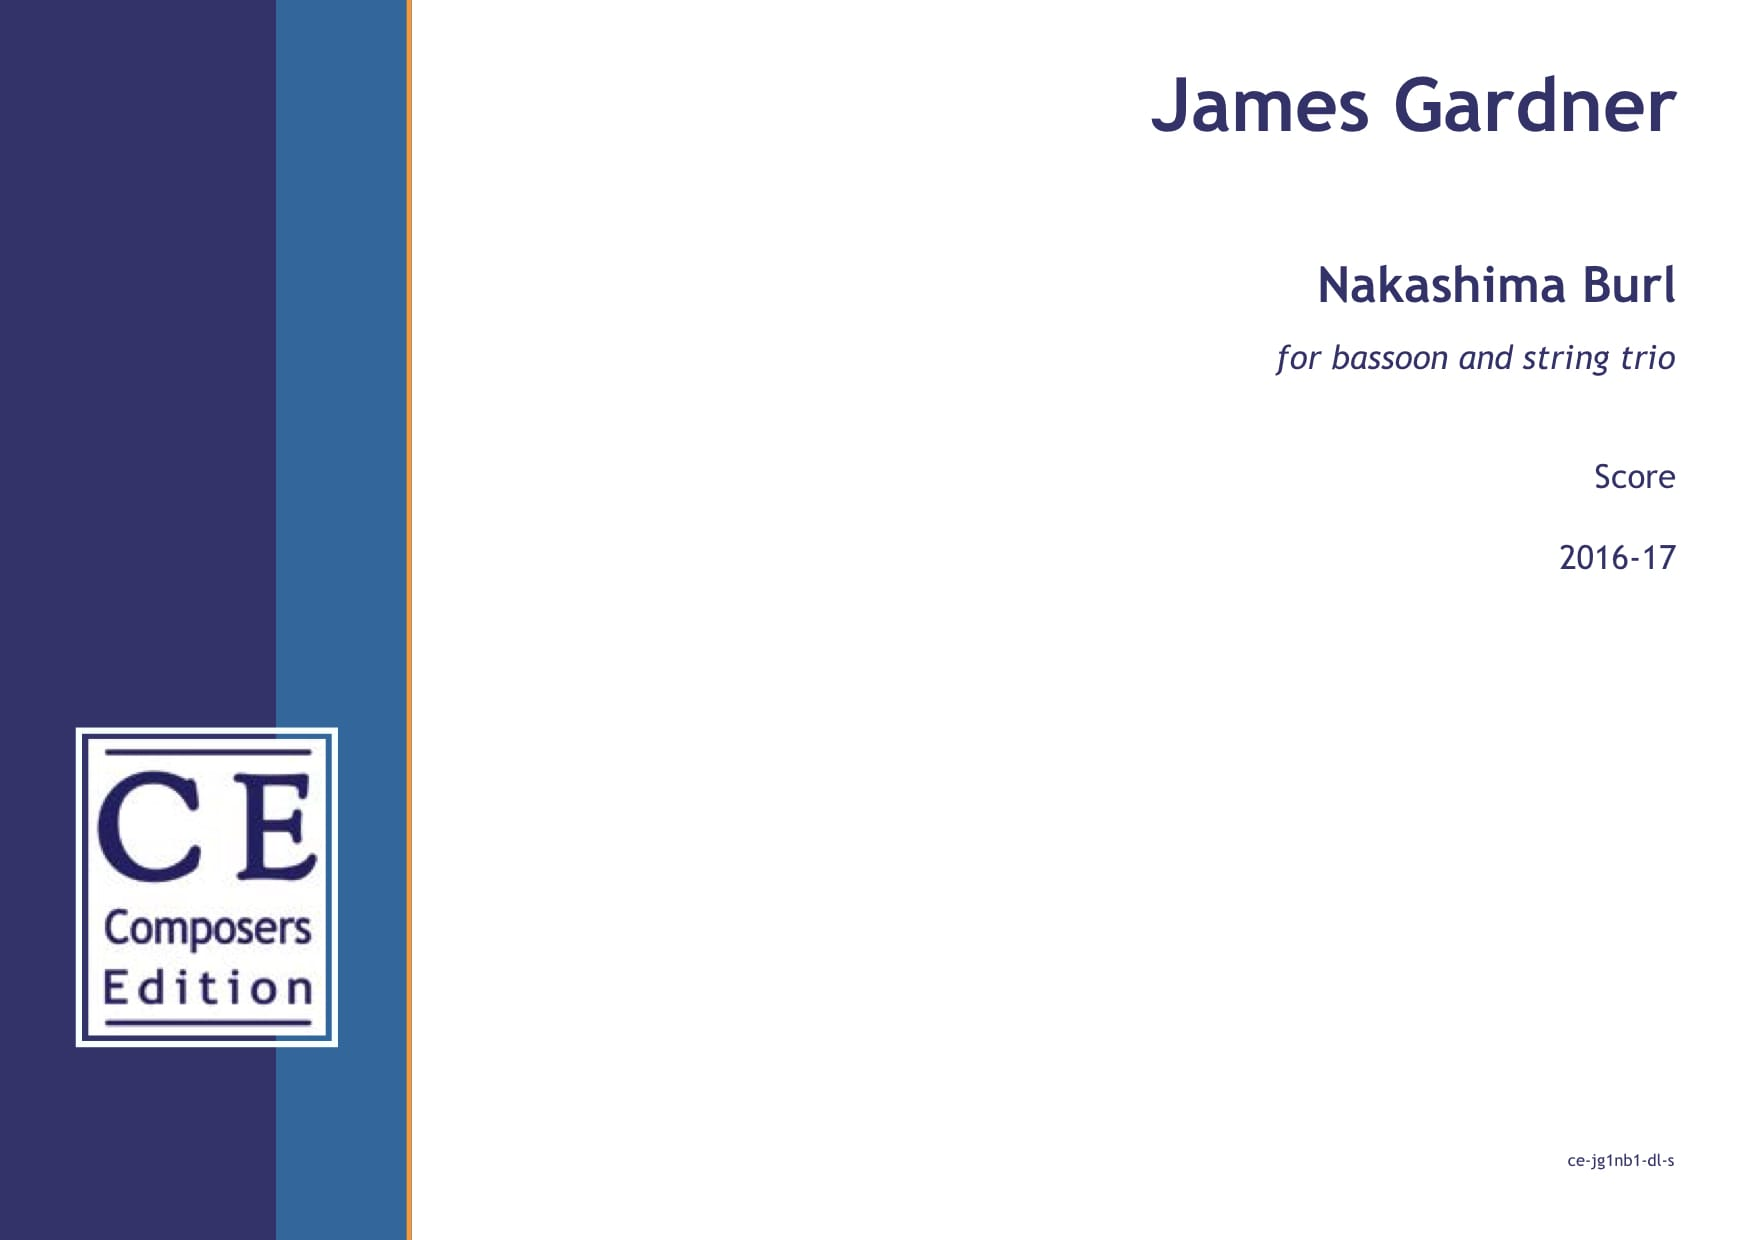 James Gardner: Nakashima Burl for bassoon and string trio